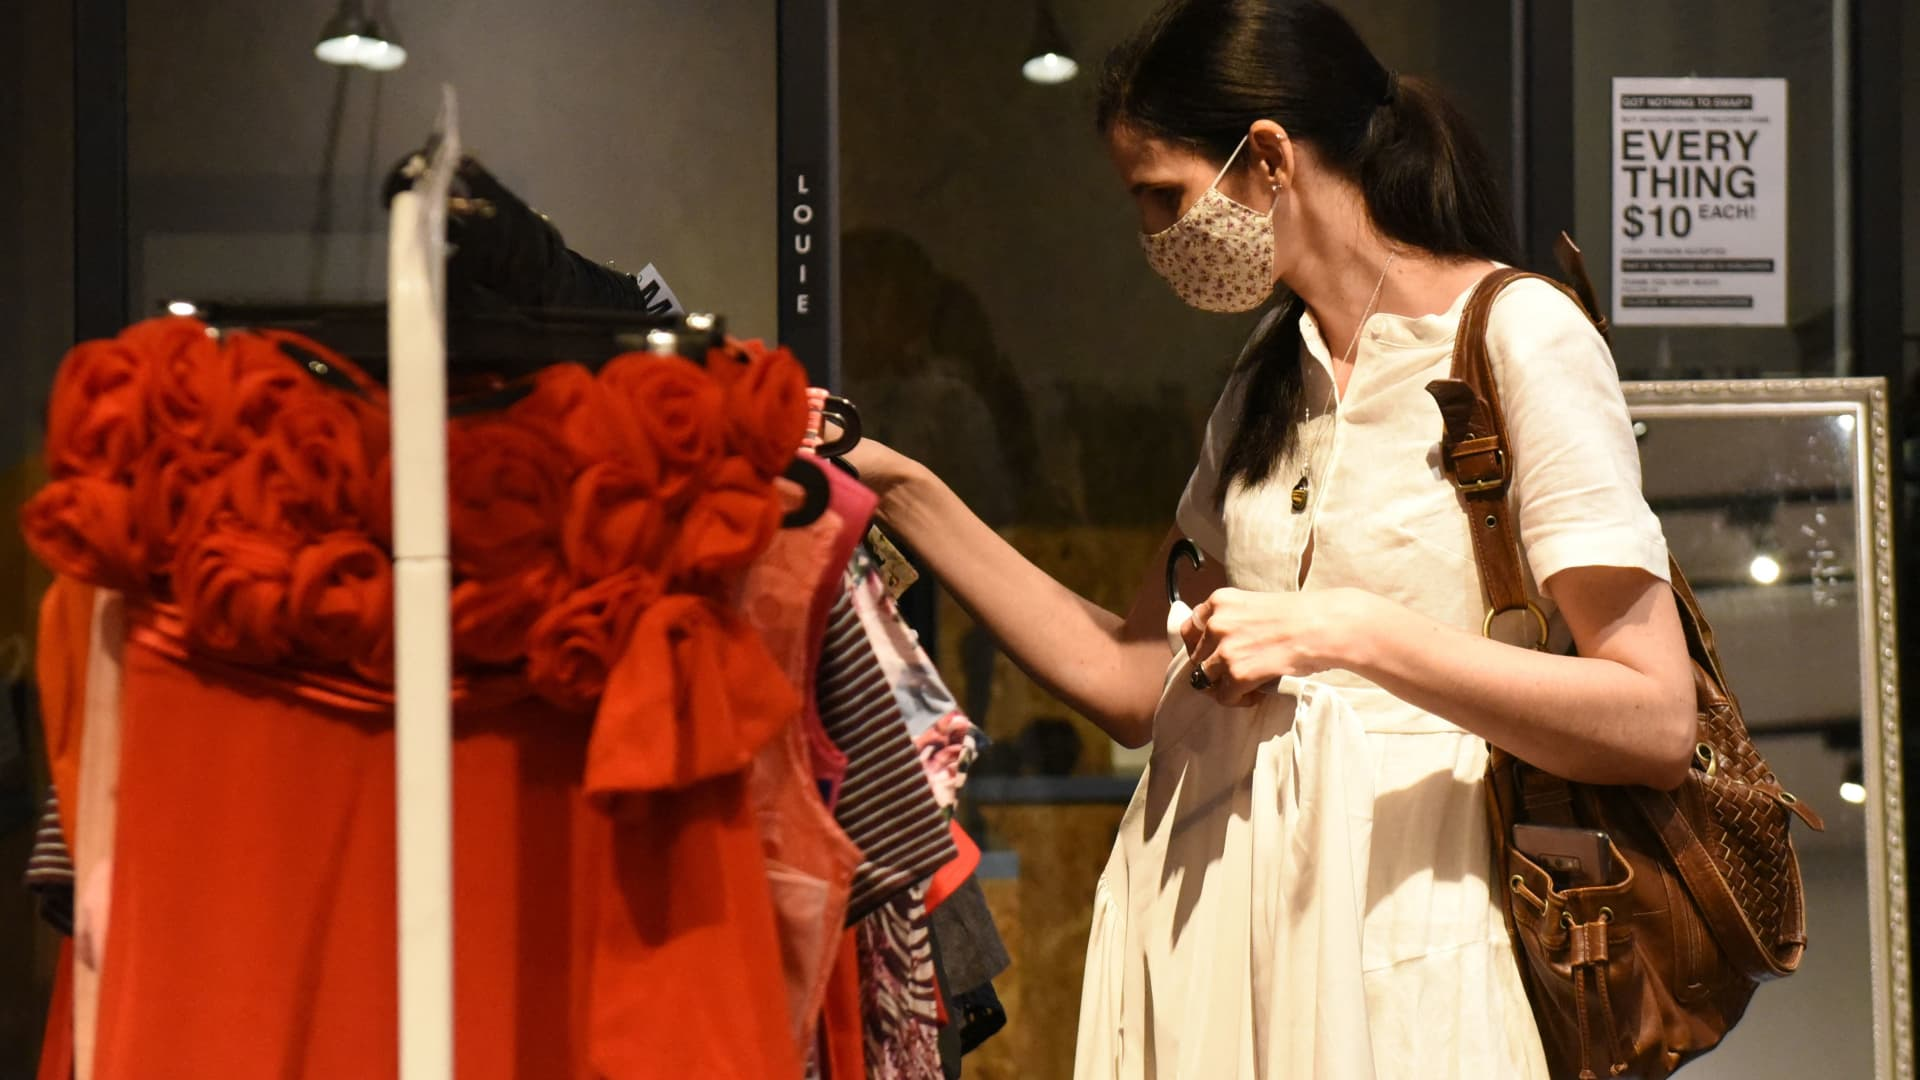 A shopper browsing through secondhand clothes at a pop-up swap event in Singapore.